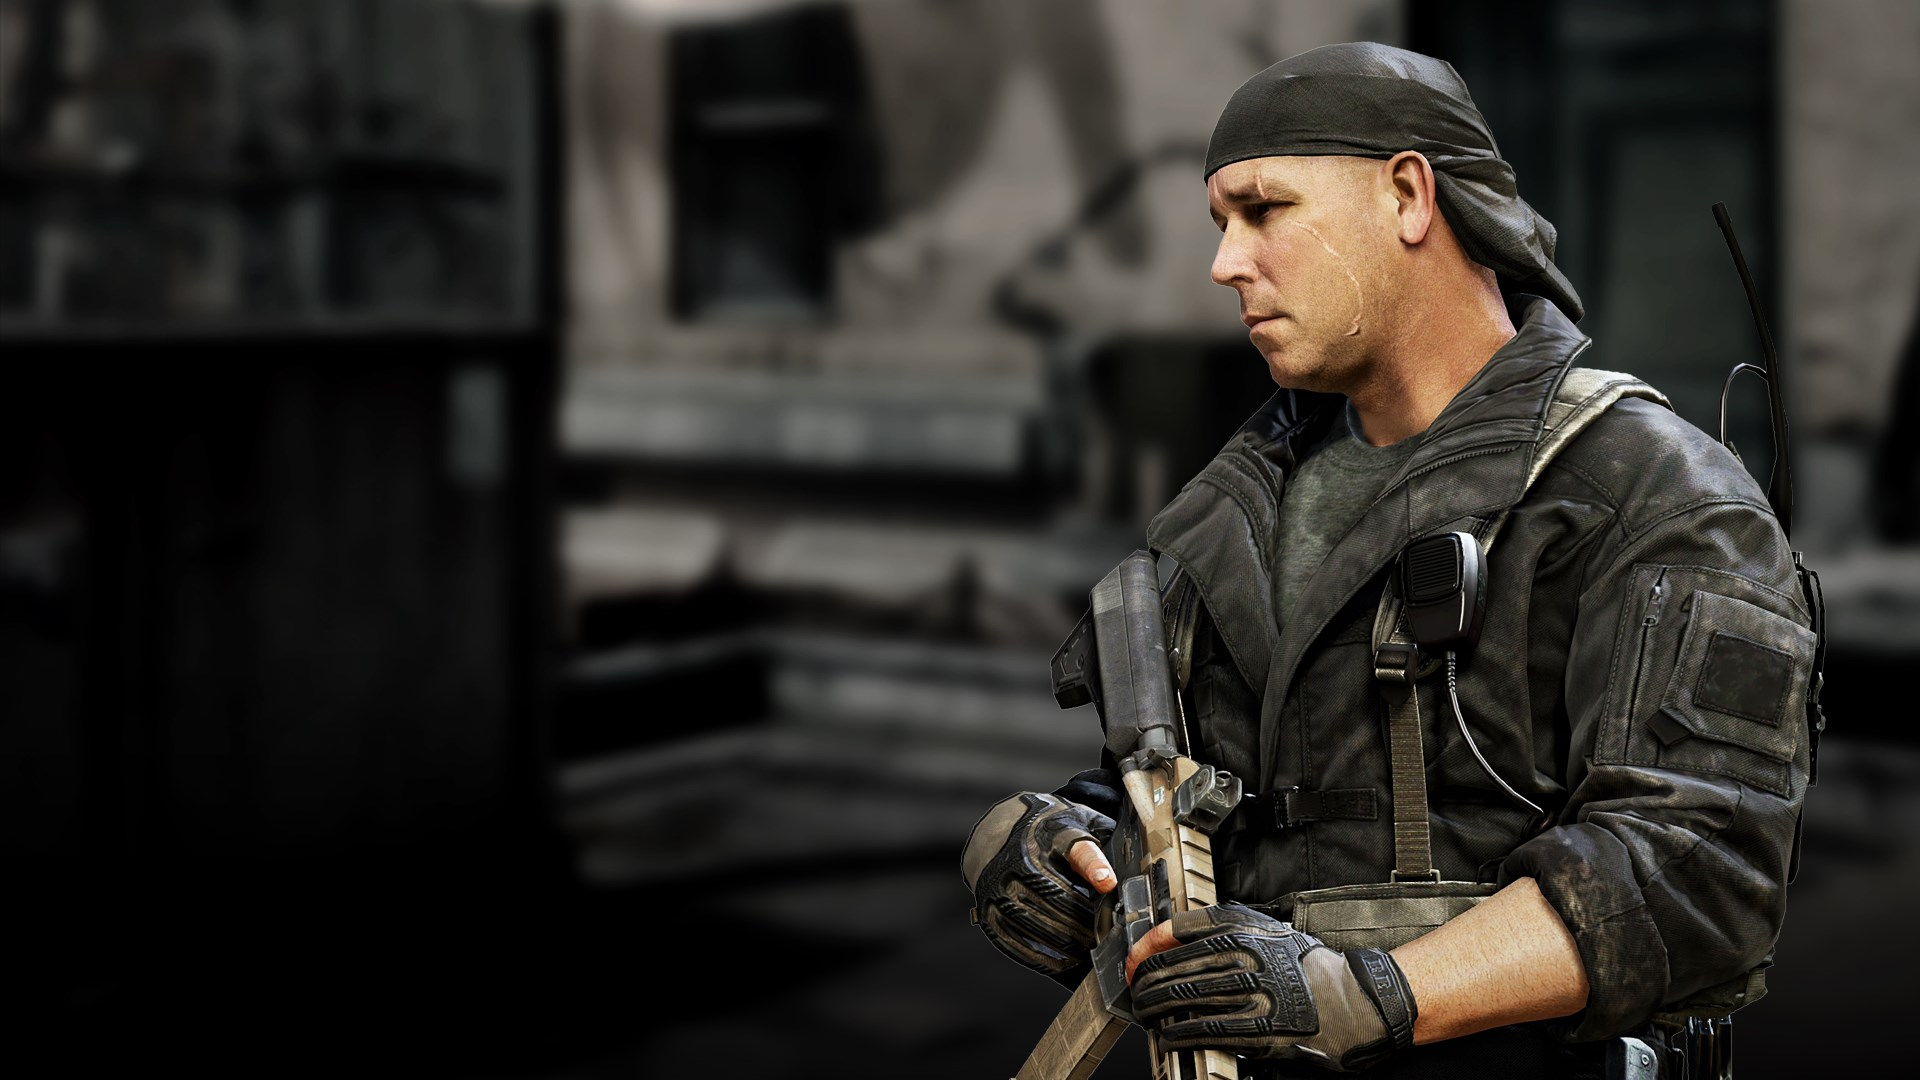 Call of Duty: Ghosts - Personaje especial Rorke